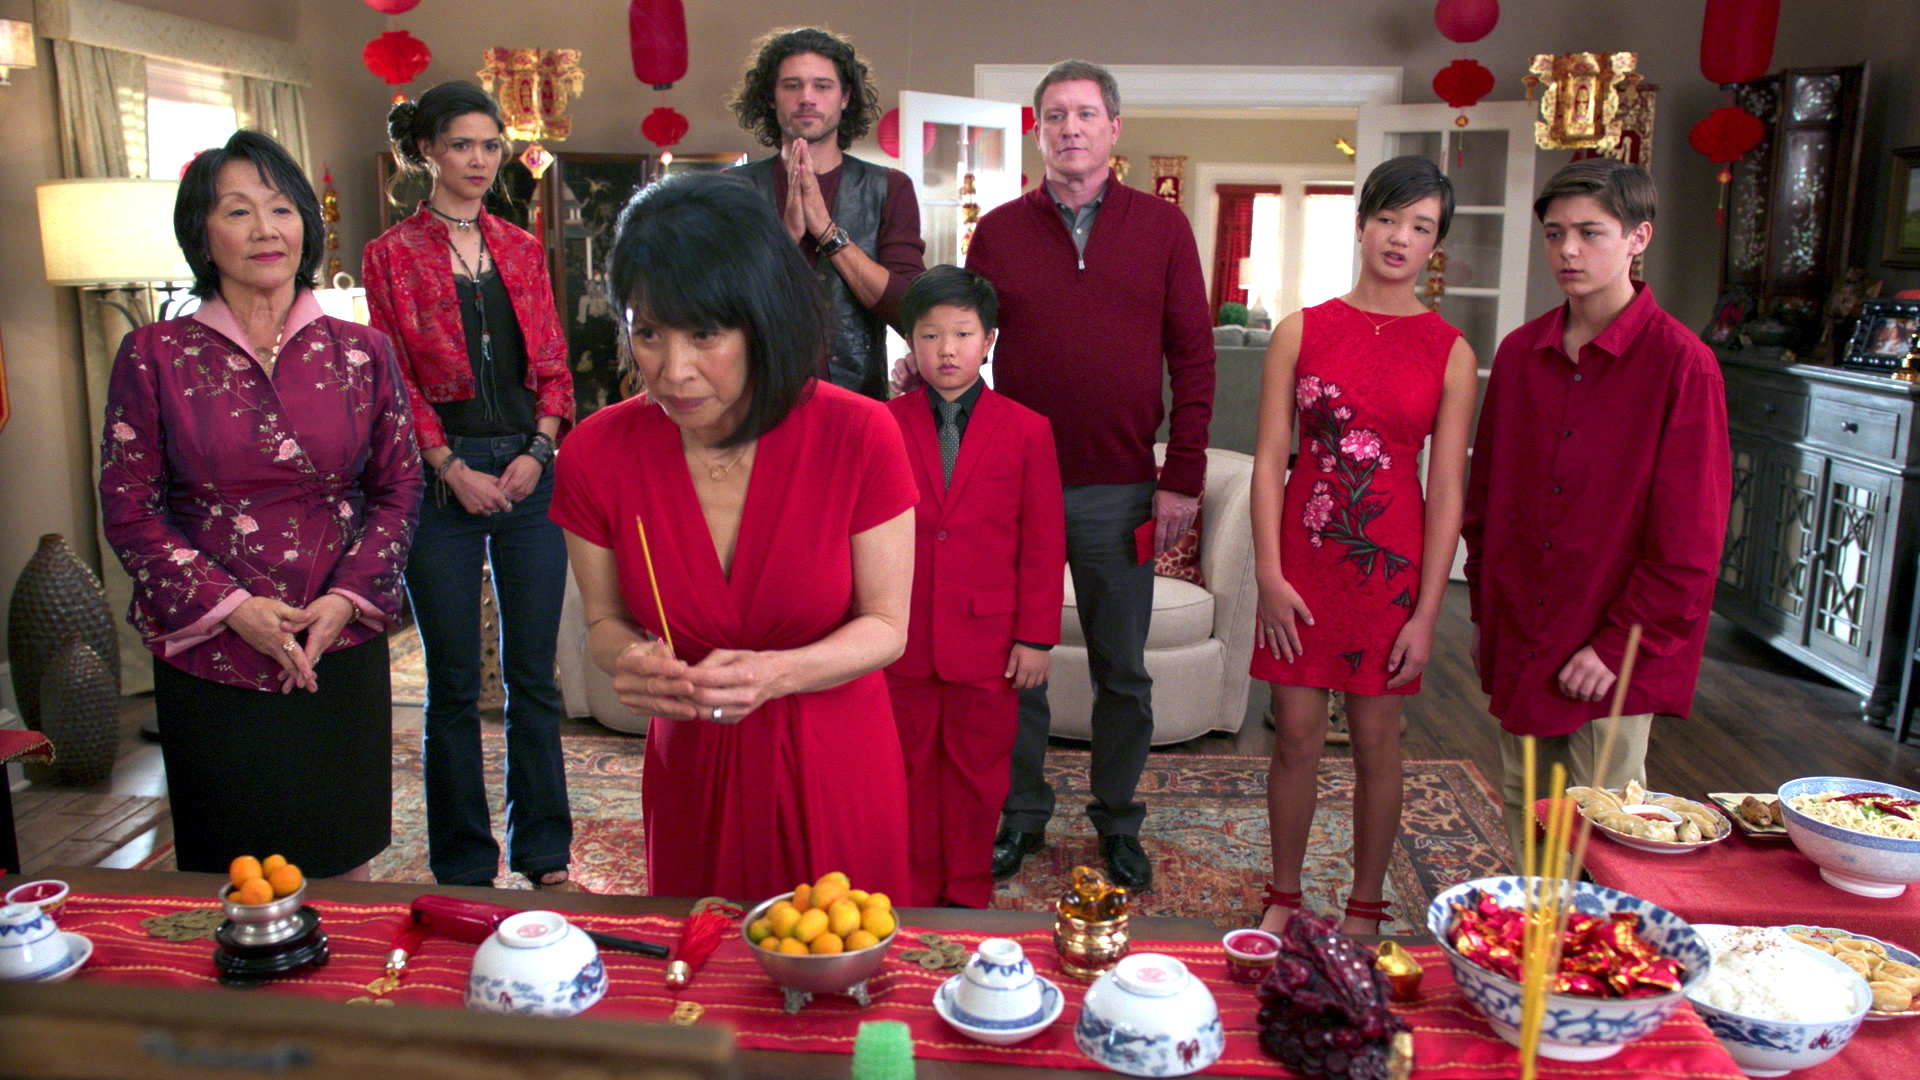 Perfect Andi Mack Explores Characteru0027s Heritage With Chinese New Year Episode |  IndieWire